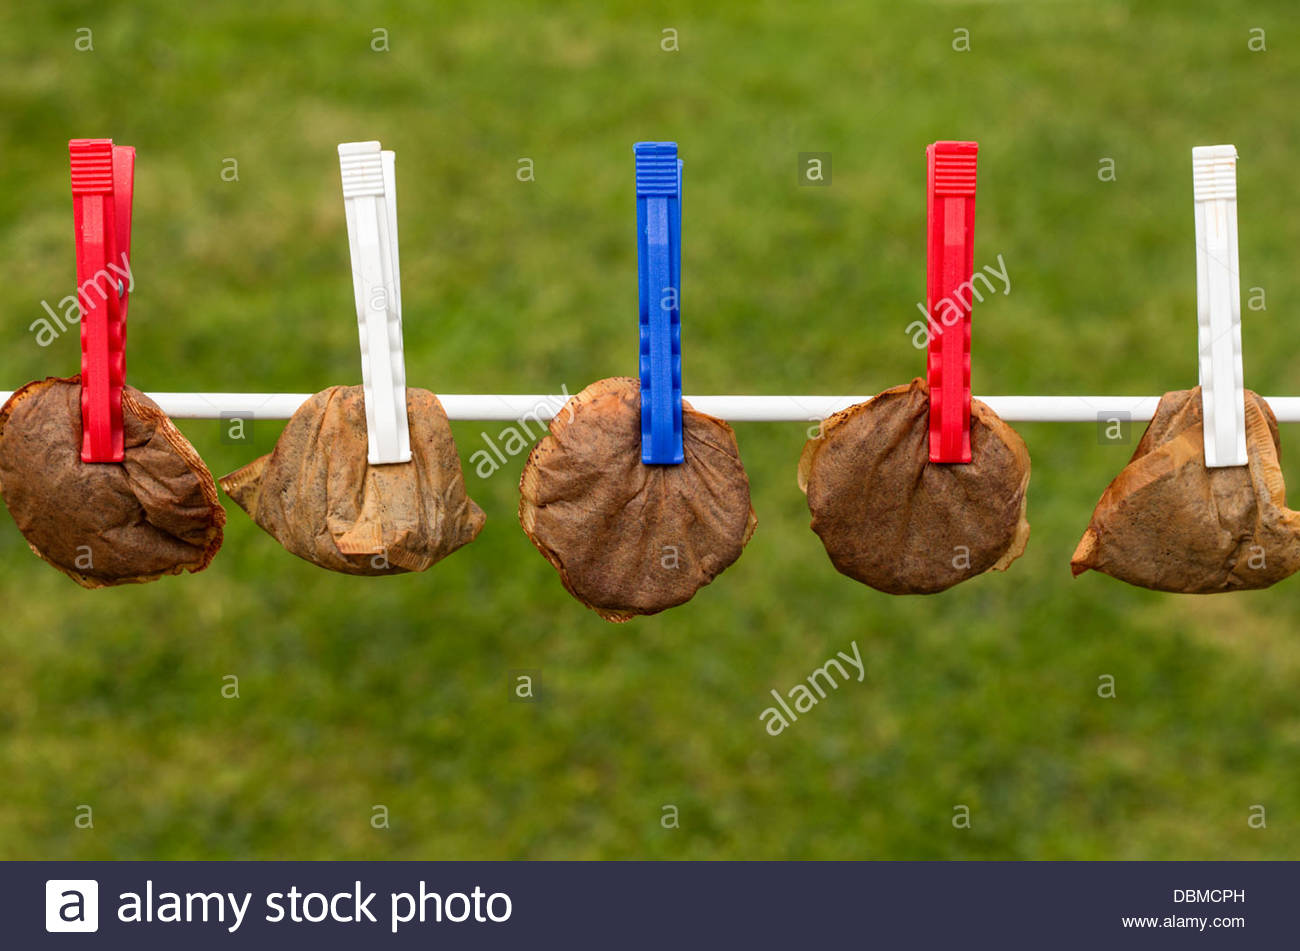 Used tea bags drying on a washing line - Stock Image